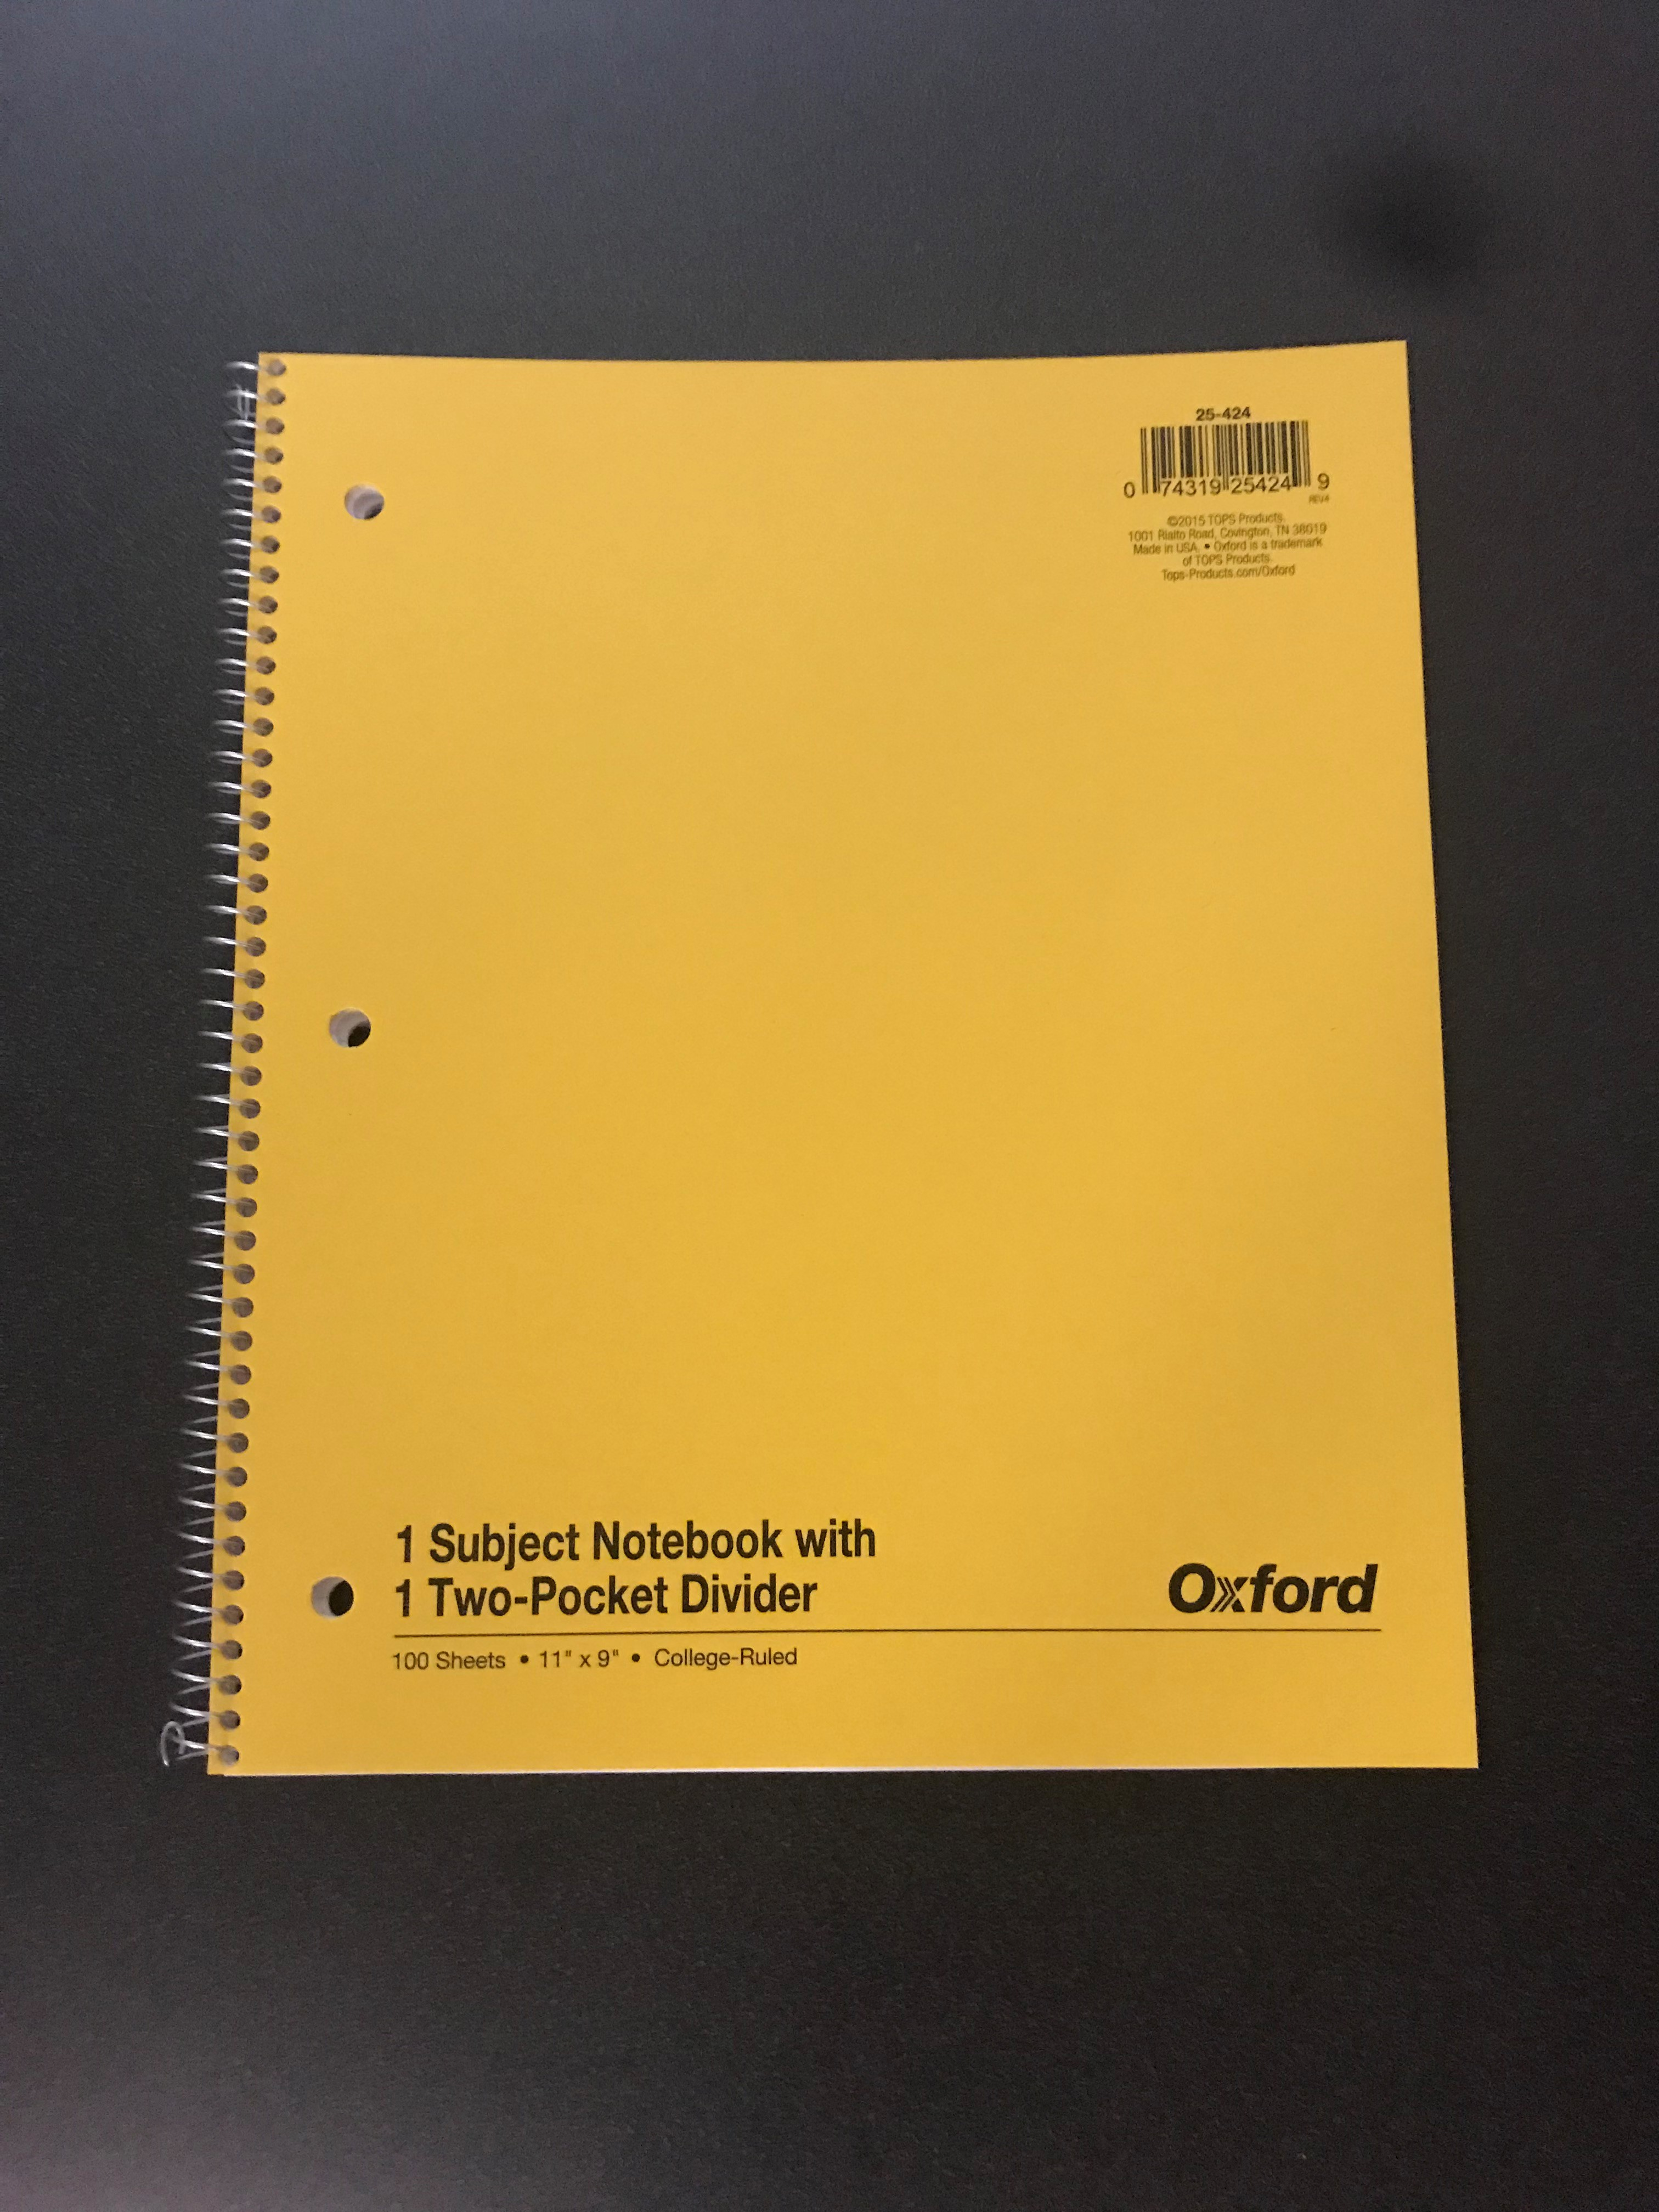 Image for the 1 Subject Notebook w/1 Two-Pocket Divider Multiple Colors product